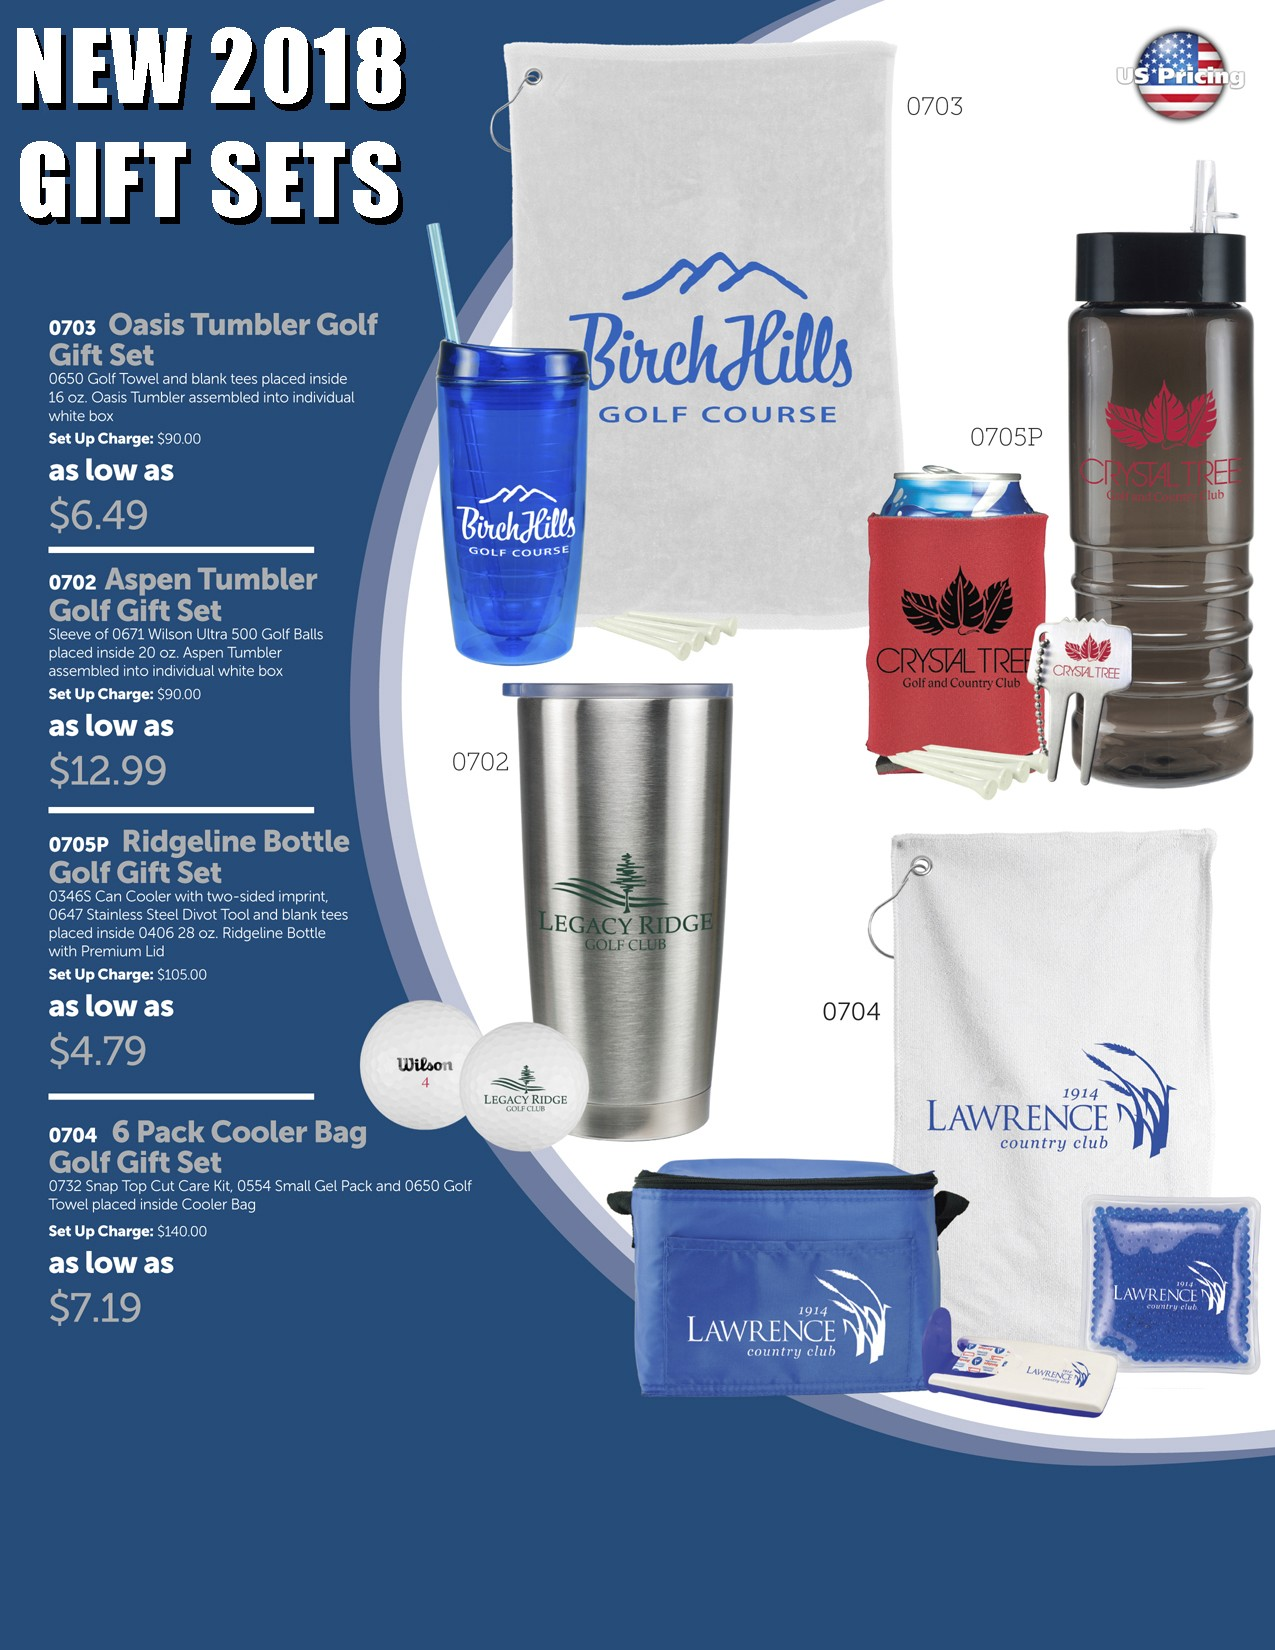 2018 Golf Gift Set Package 1A